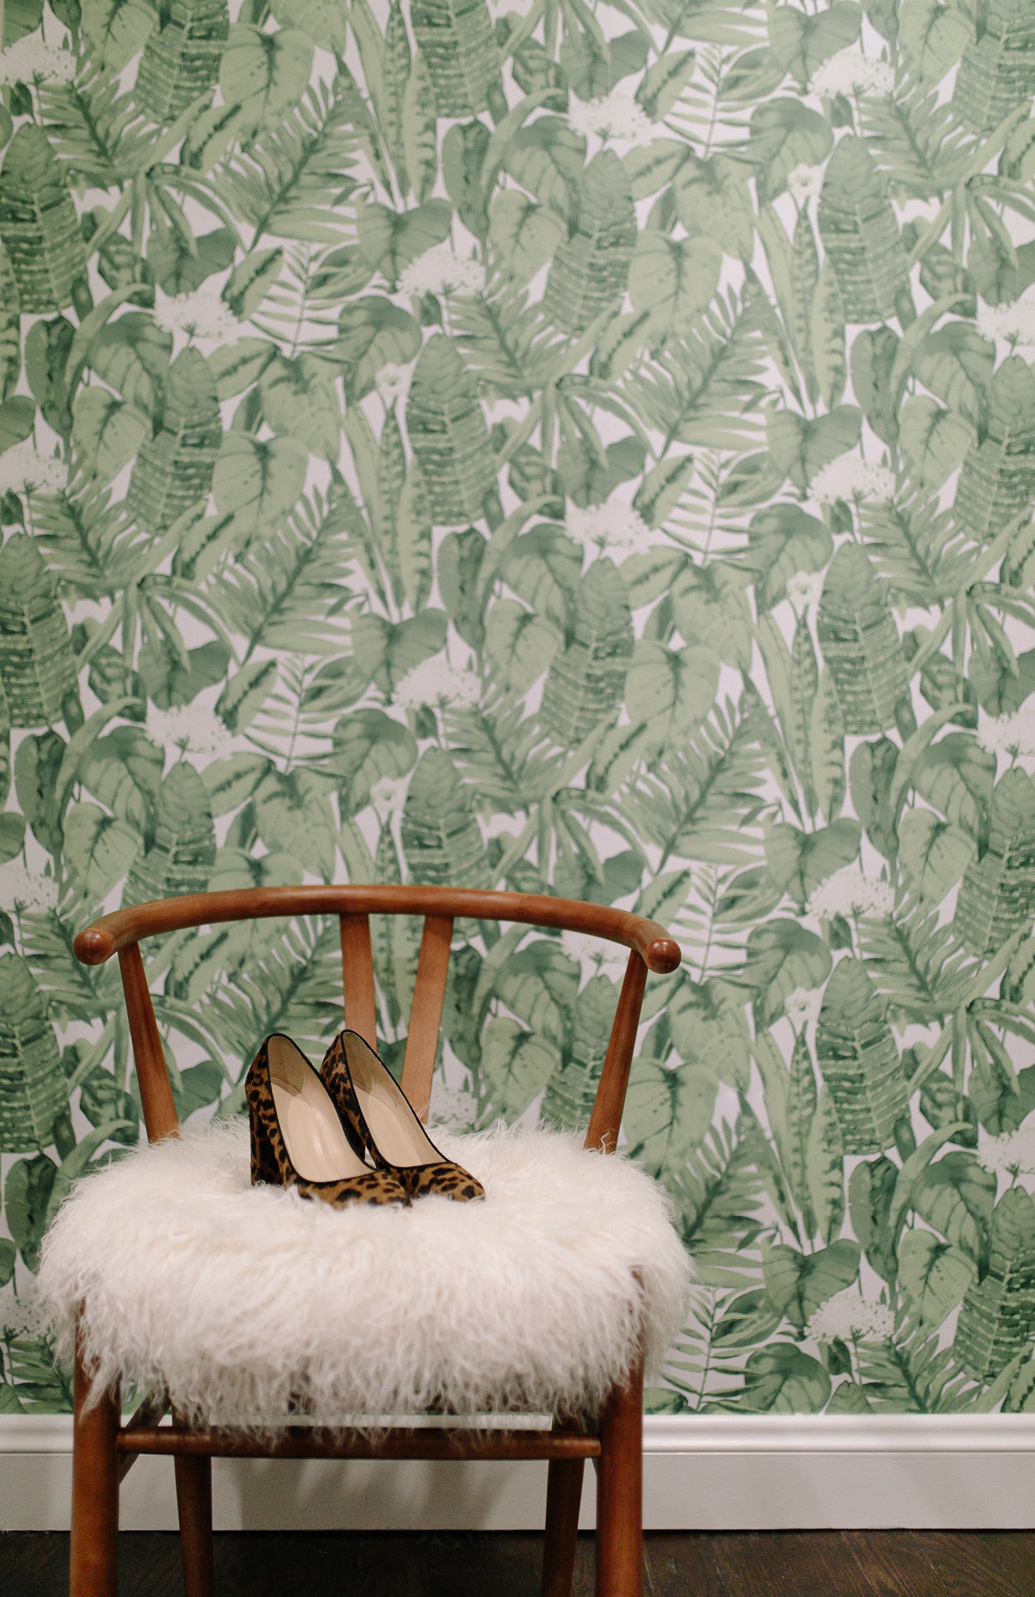 Muted Jungle Wallpaper from Tempaper